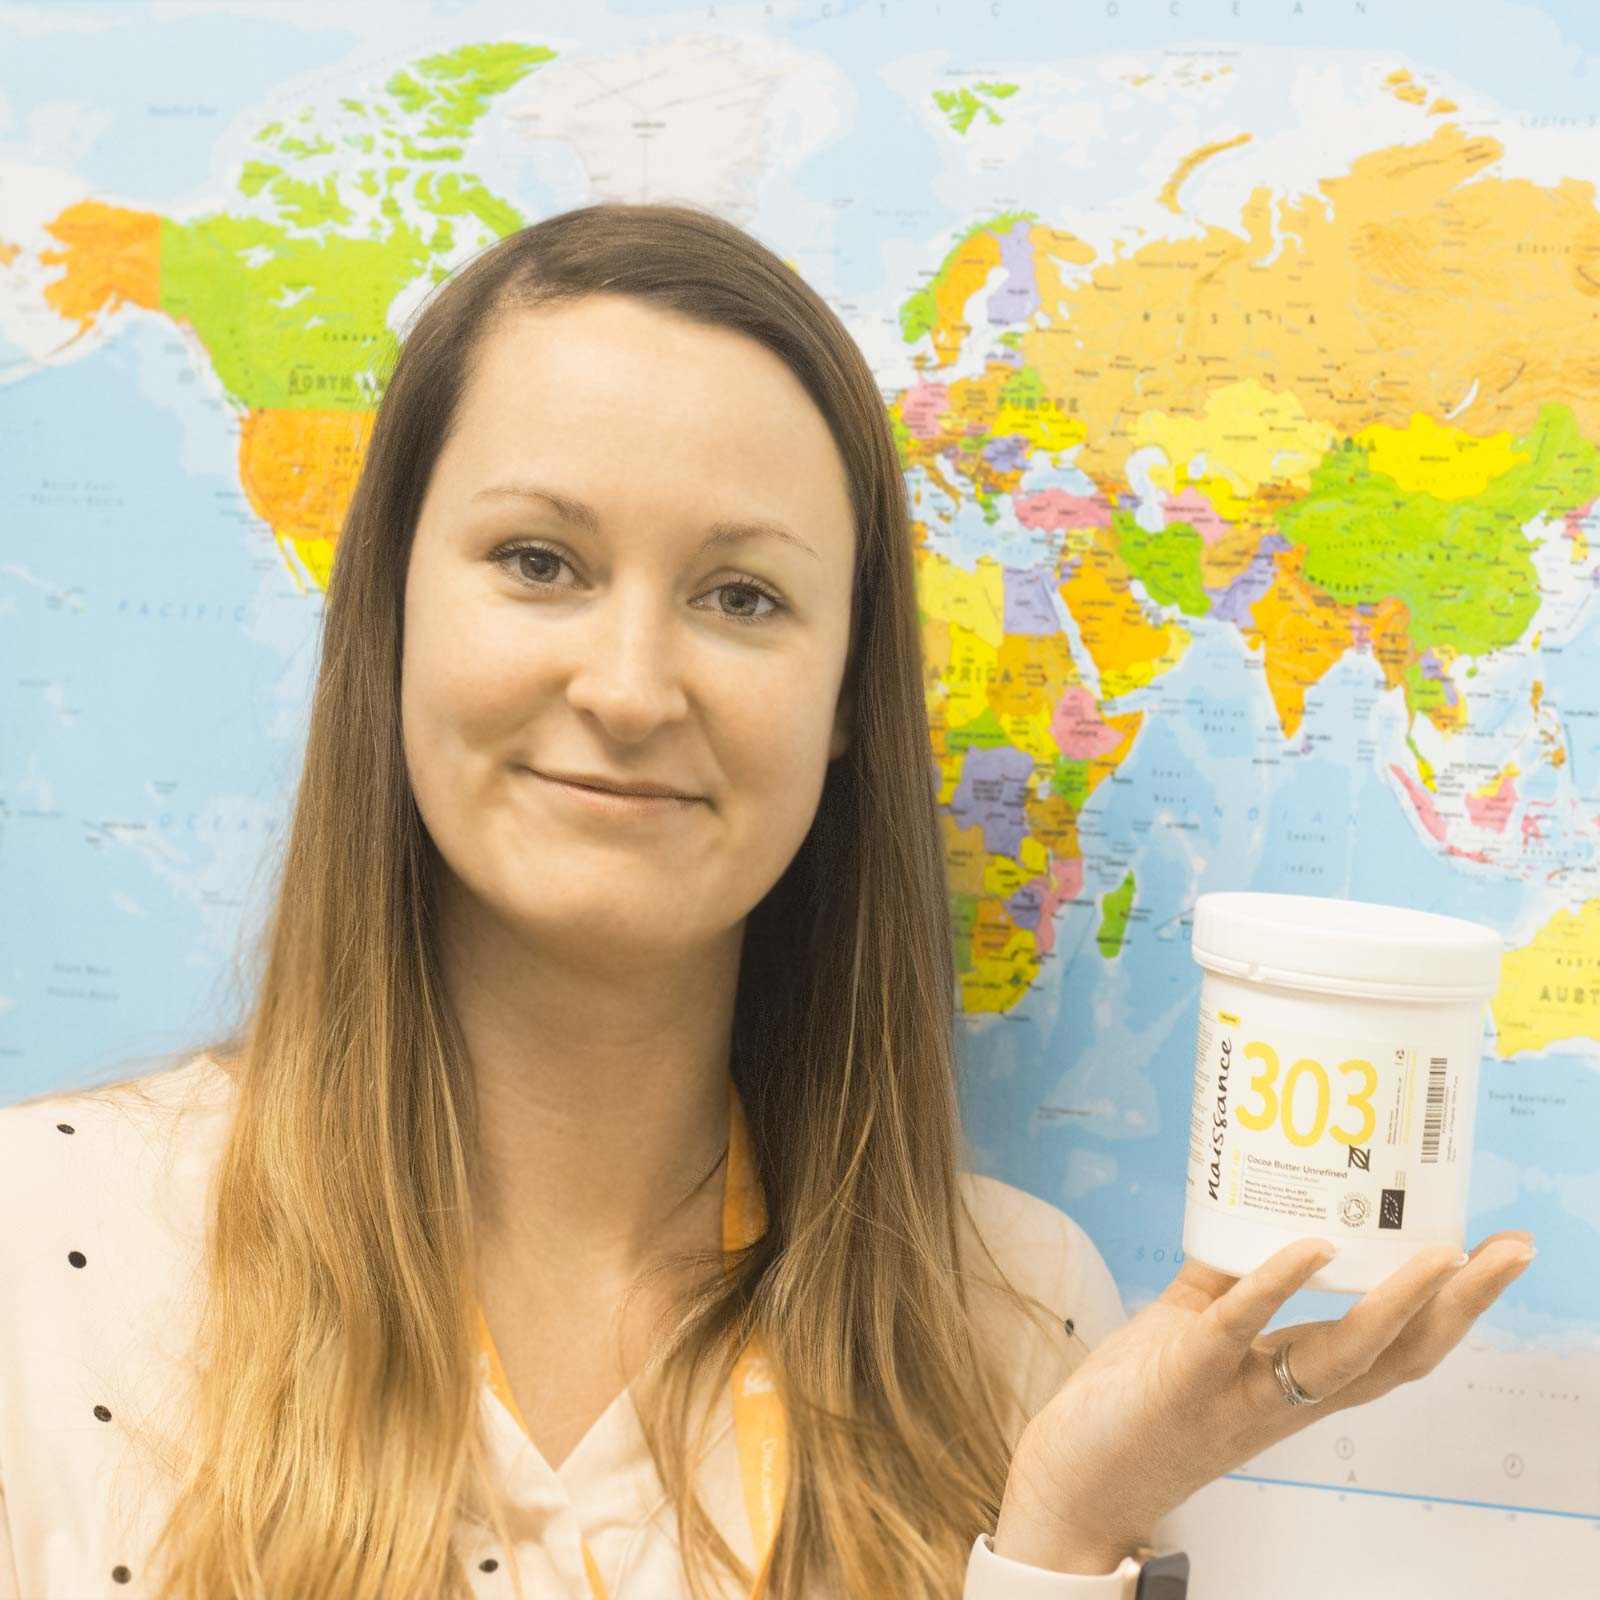 """Chantal James Head of Procurement and Ethical Policy  """"I joined Naissance early in 2018. It was the ethos of the company that attracted me to join. The continual drive to discover better and working with all the lovely people that this ethos attracts. What I love most about my job here is building ethical long term relationships with incredible suppliers all over the world, always learning new things about their communities and culture. We strive to work directly with the growers to not only ensure that we source the best quality products for our customers but that we can also help give back to communities where we can """"  Favourite product: """"Definitely our Organic Unrefined Shea Butter that we source from an amazing women's cooperative in Ghana"""""""